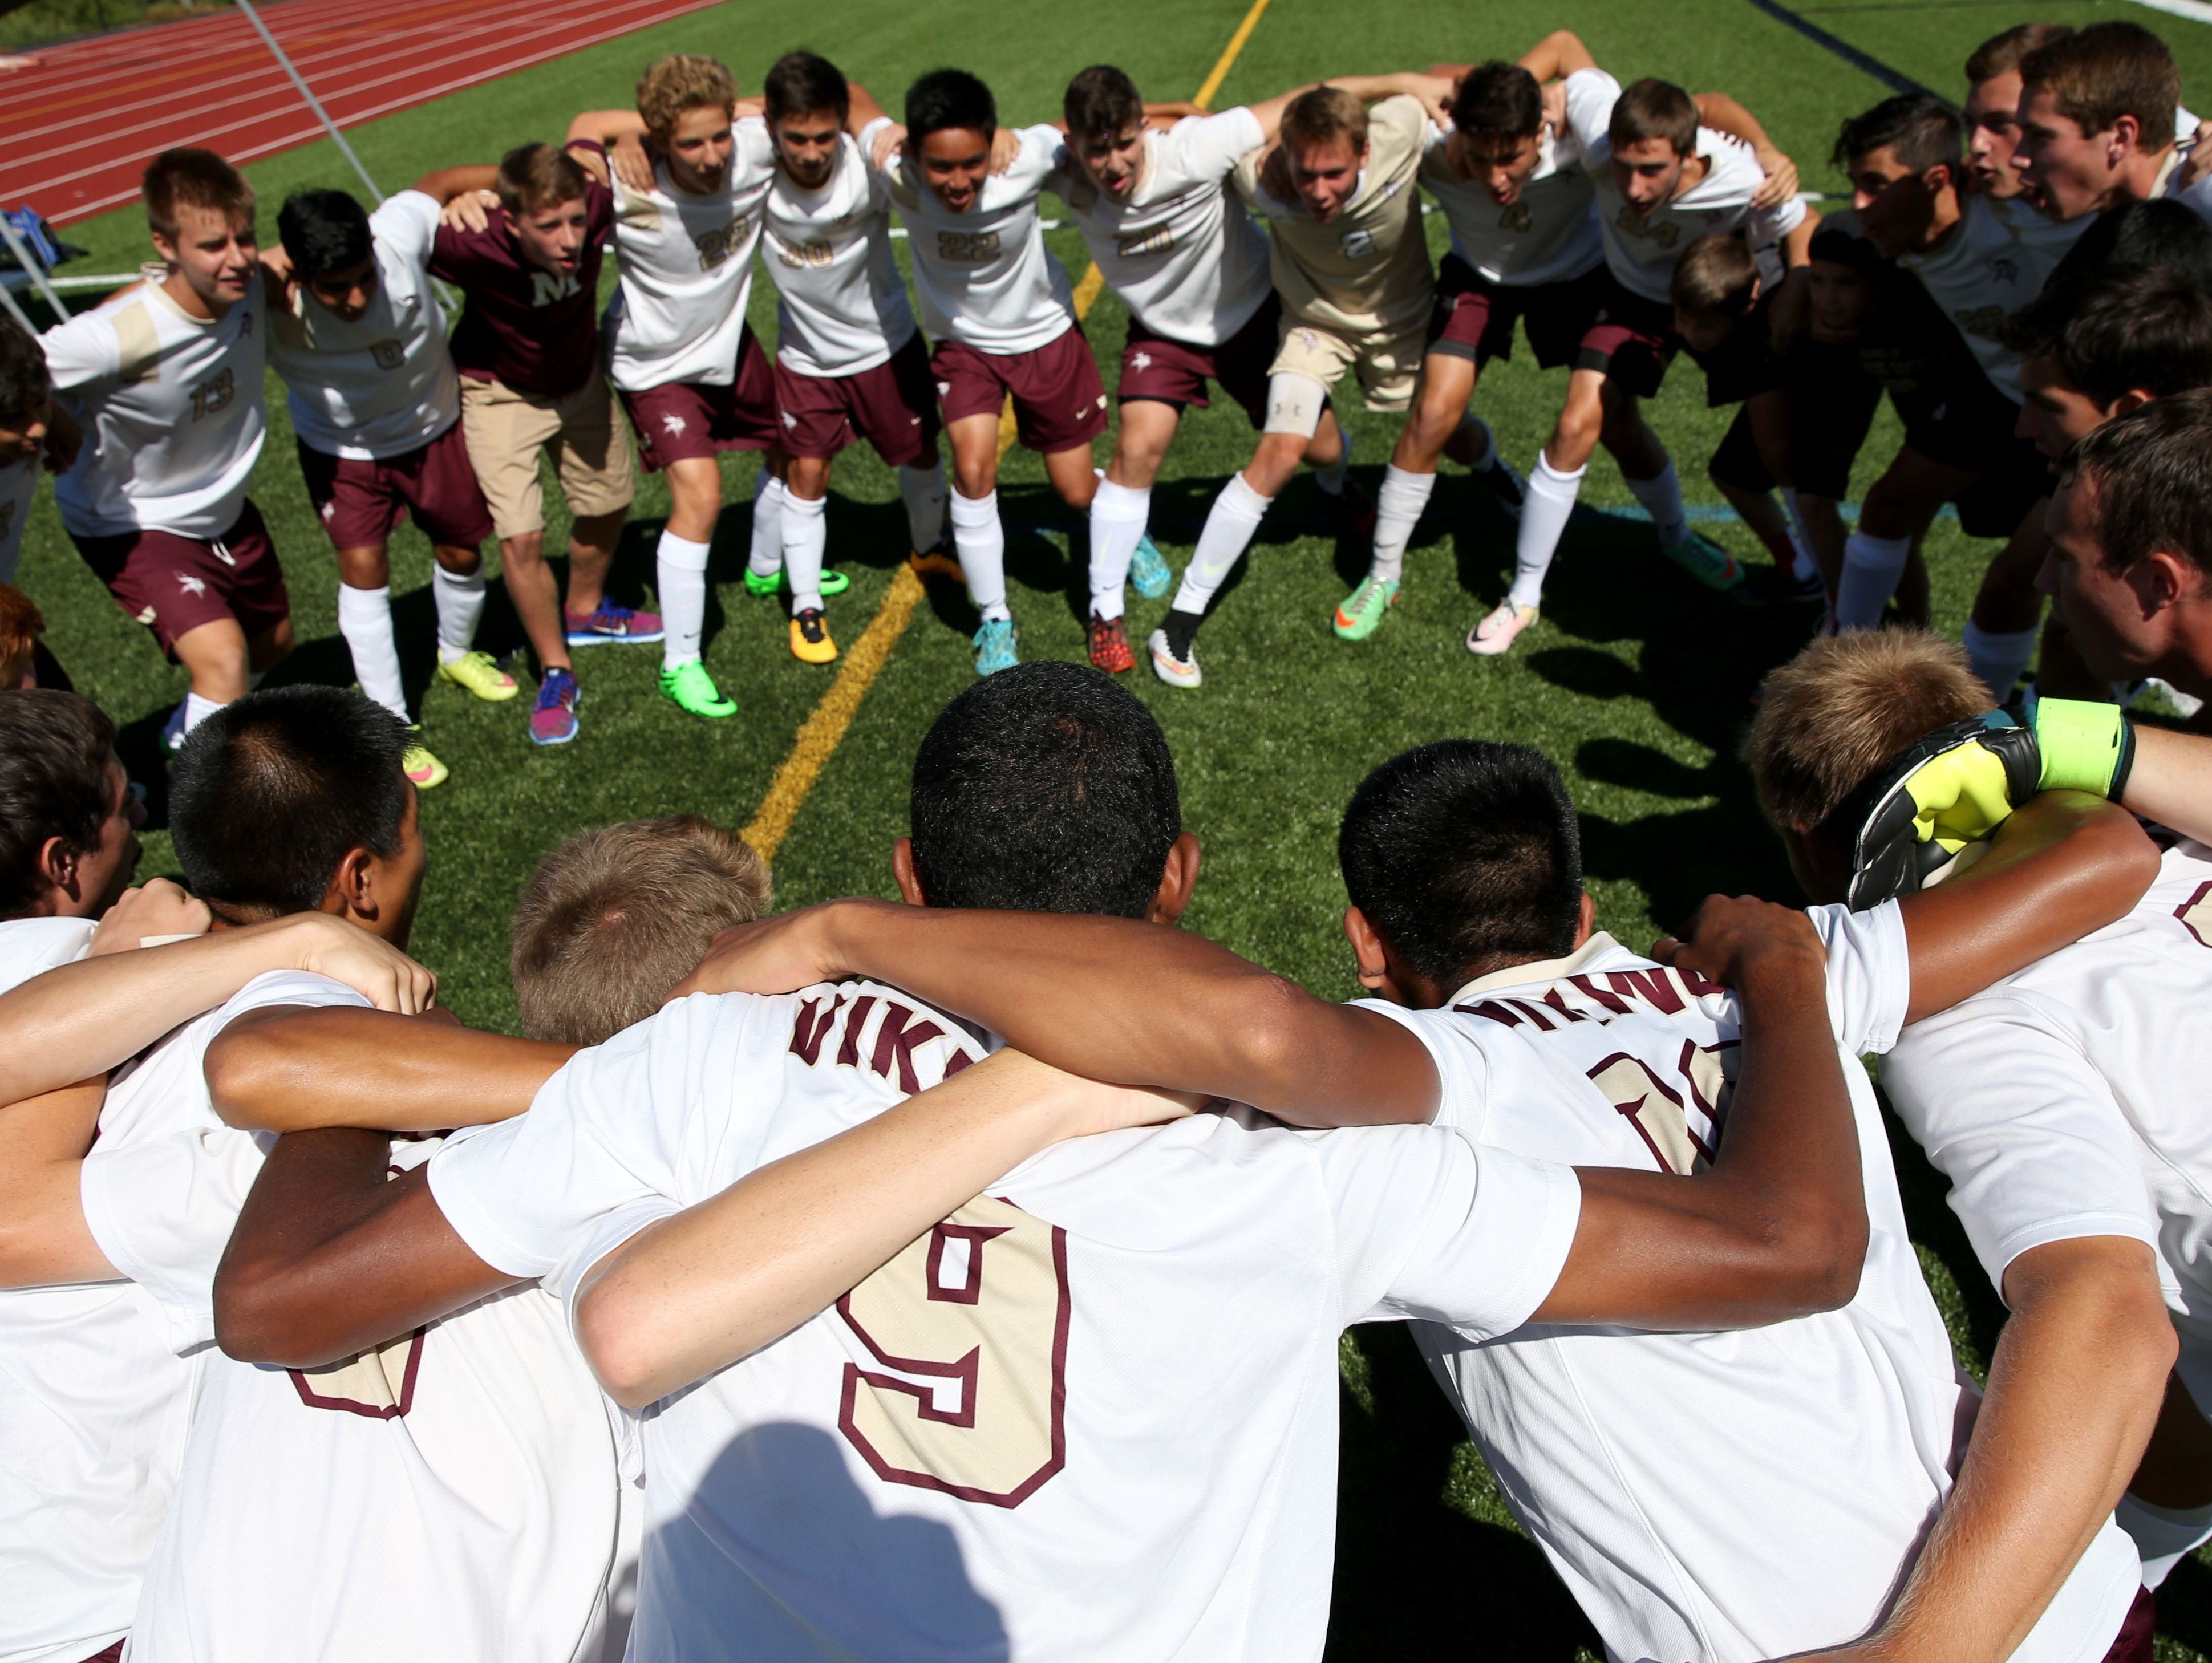 Adrian Padilla (9) and his Pittsford Mendon teammates get ready for the first game of the season against Aquinas.